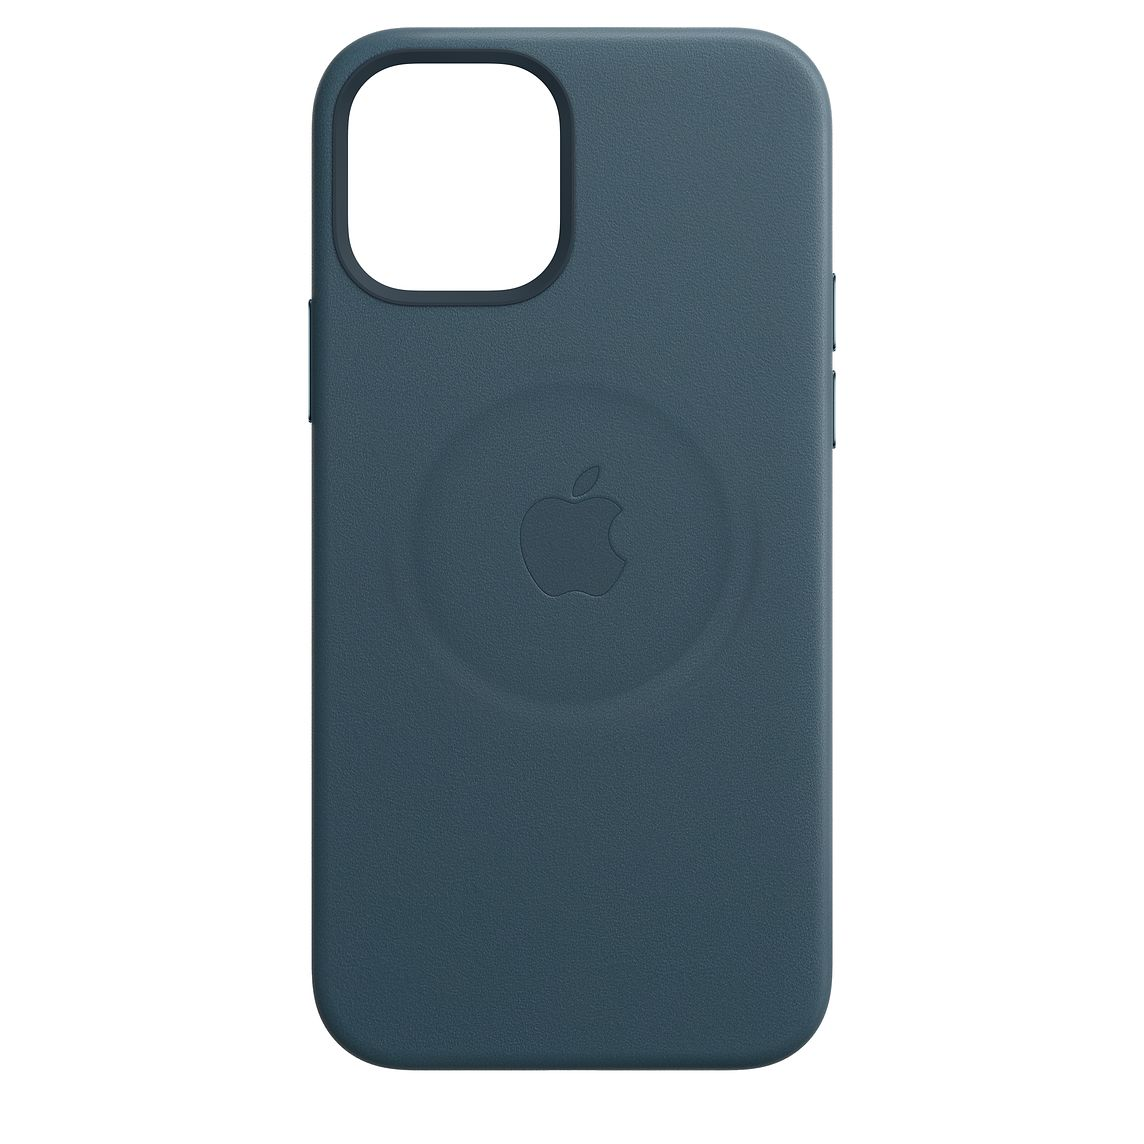 - iPhone 12 Pro Max Leather Case with MagSafe / Azul Báltico 1